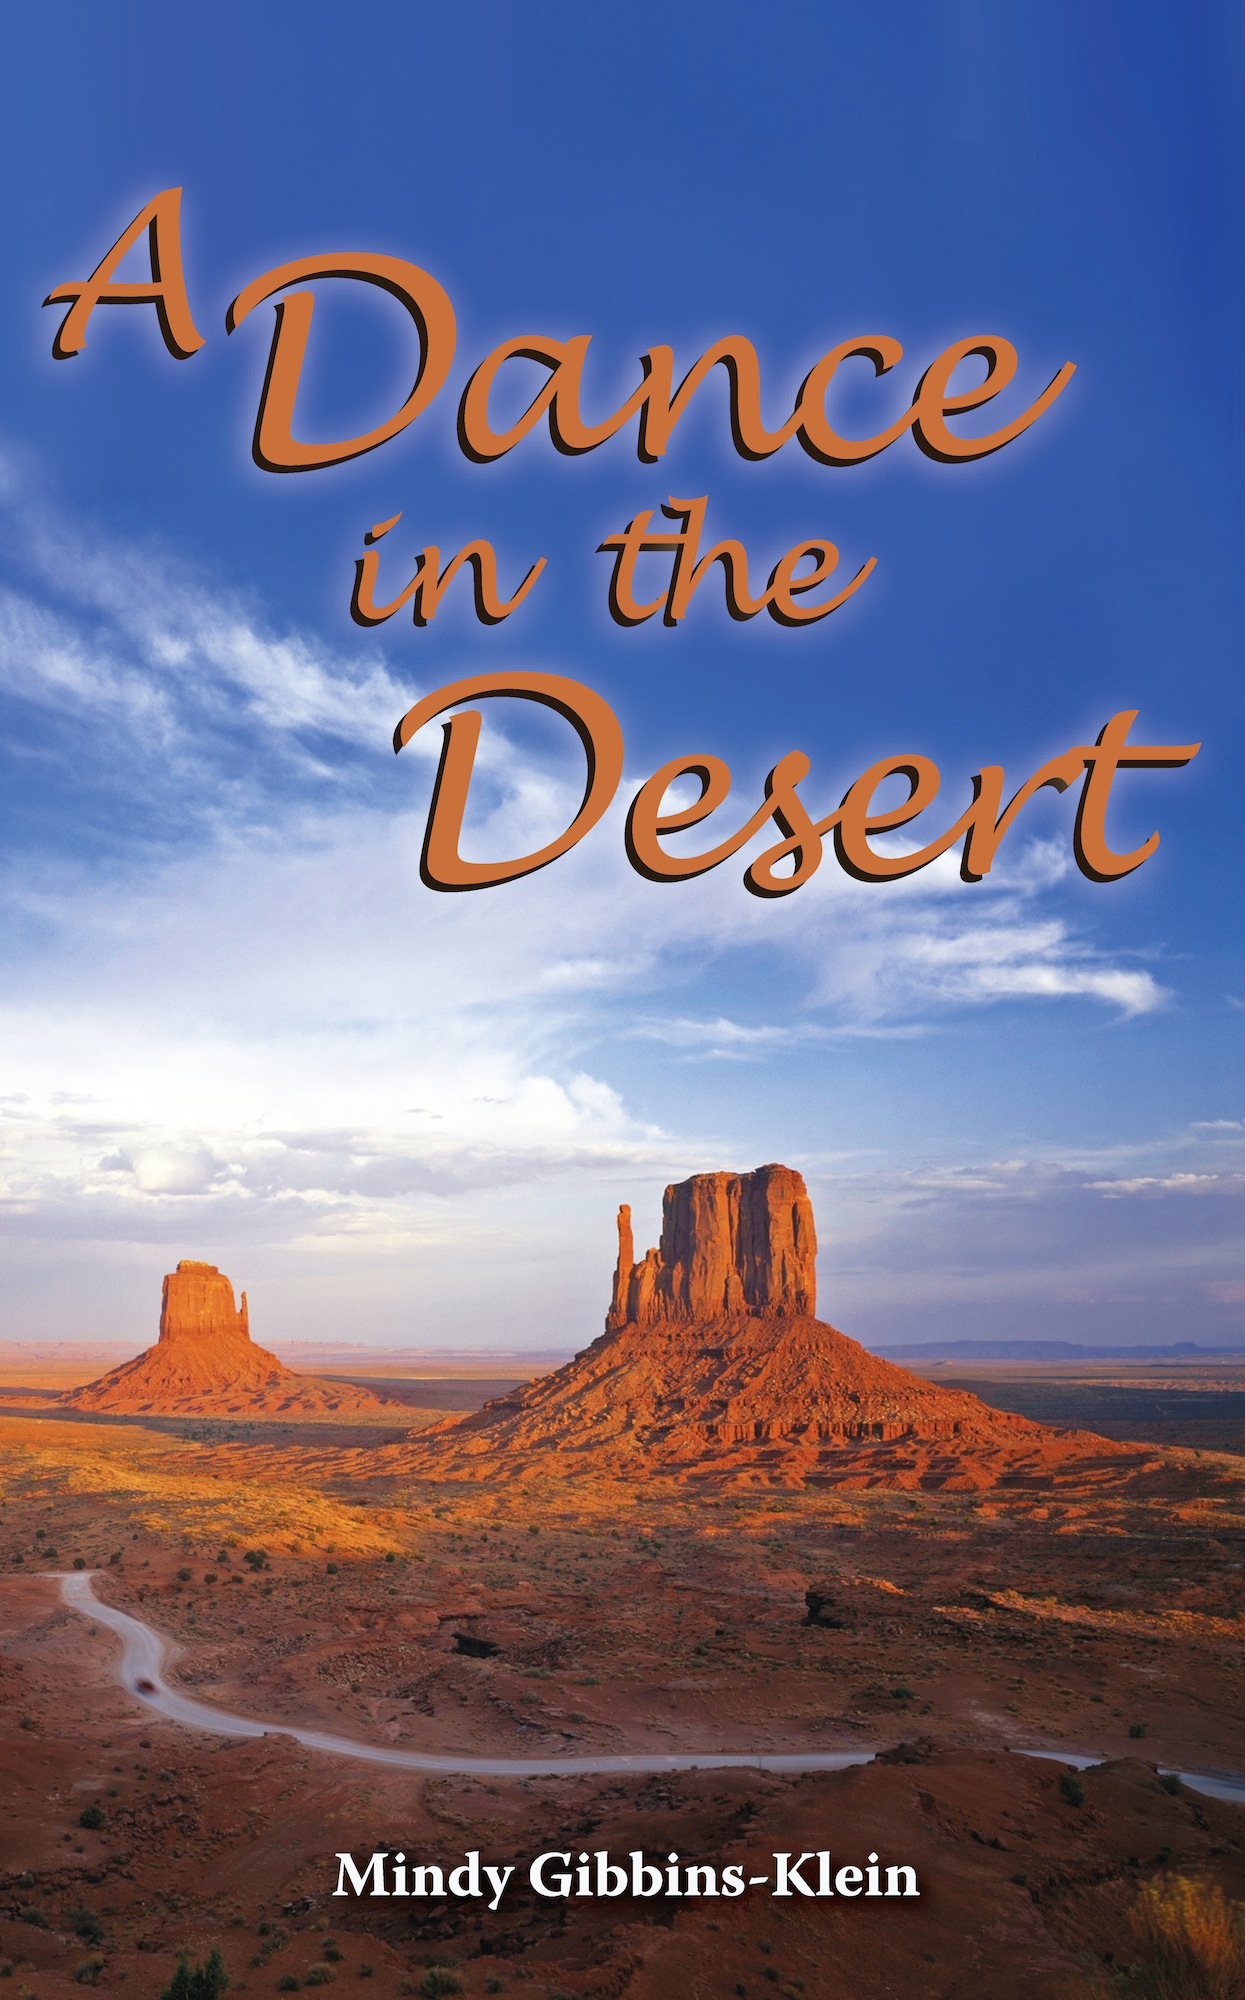 A Dance in the Desert